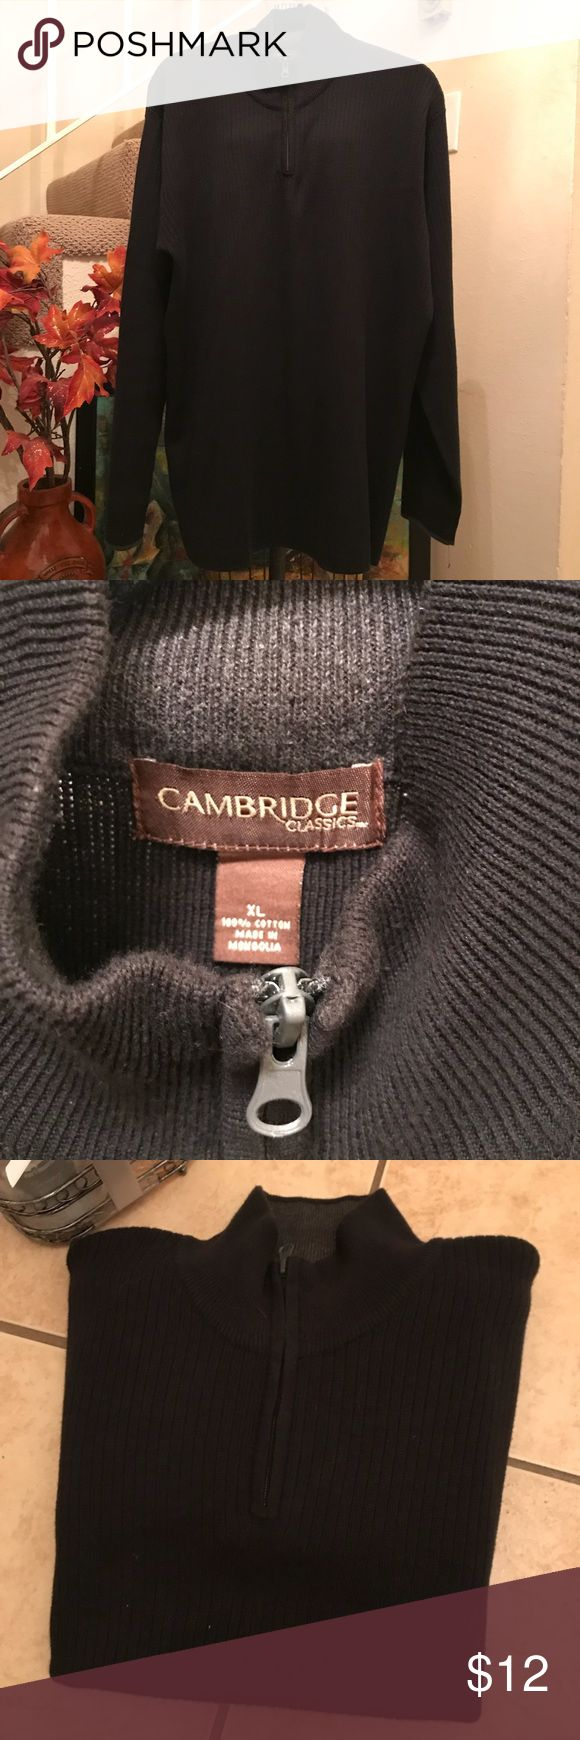 CAMBRIDGE Classics Men's Sweater Size XL CAMBRIDGE Classics Men's Sweater Size XL pre owned in good clean condition no rips holes or stains Cambridge Classics Shirts Sweatshirts & Hoodies